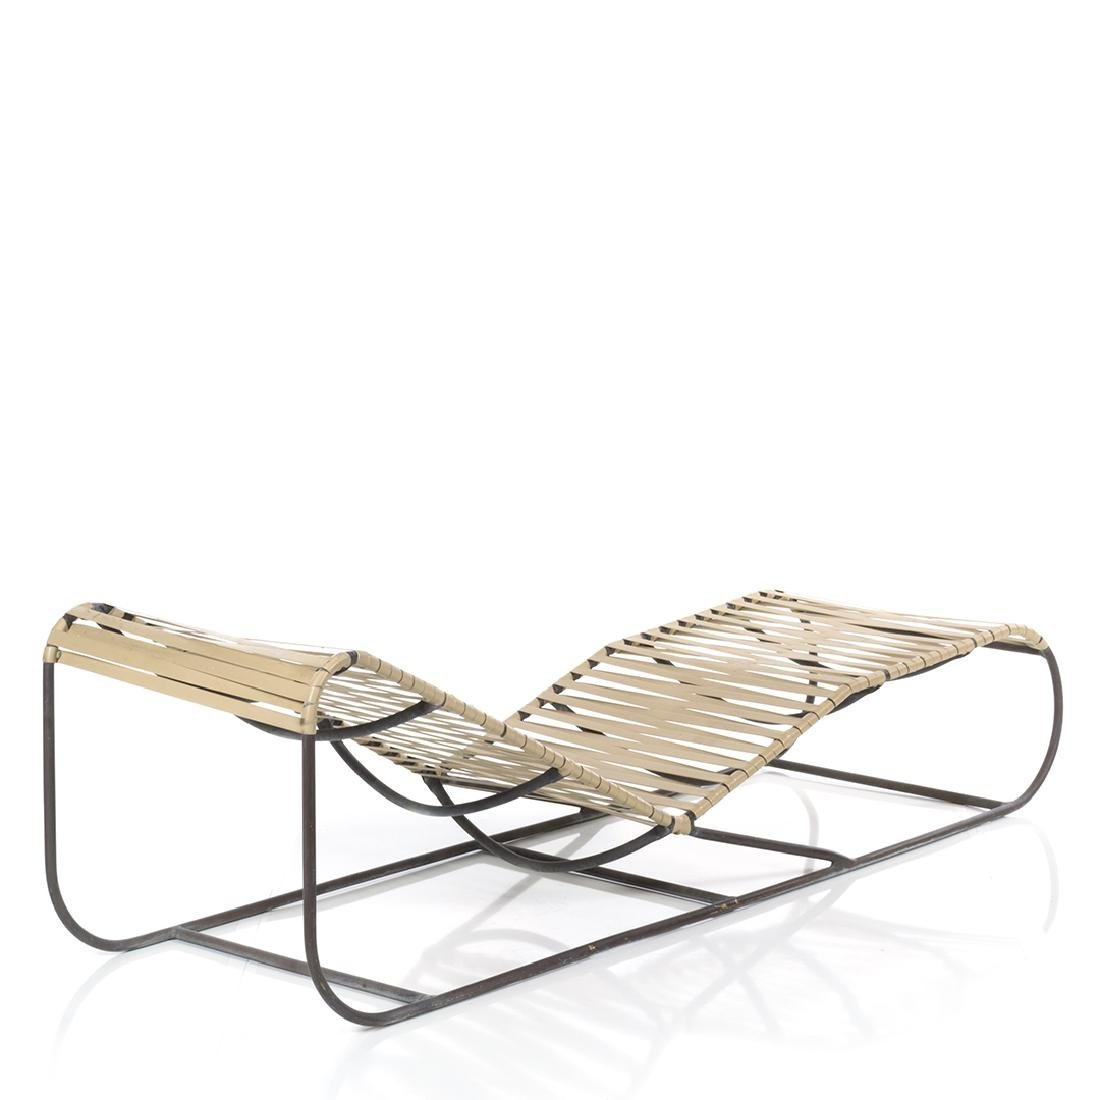 Kipp Stewart Bronze Chaise Lounges (2) - 5